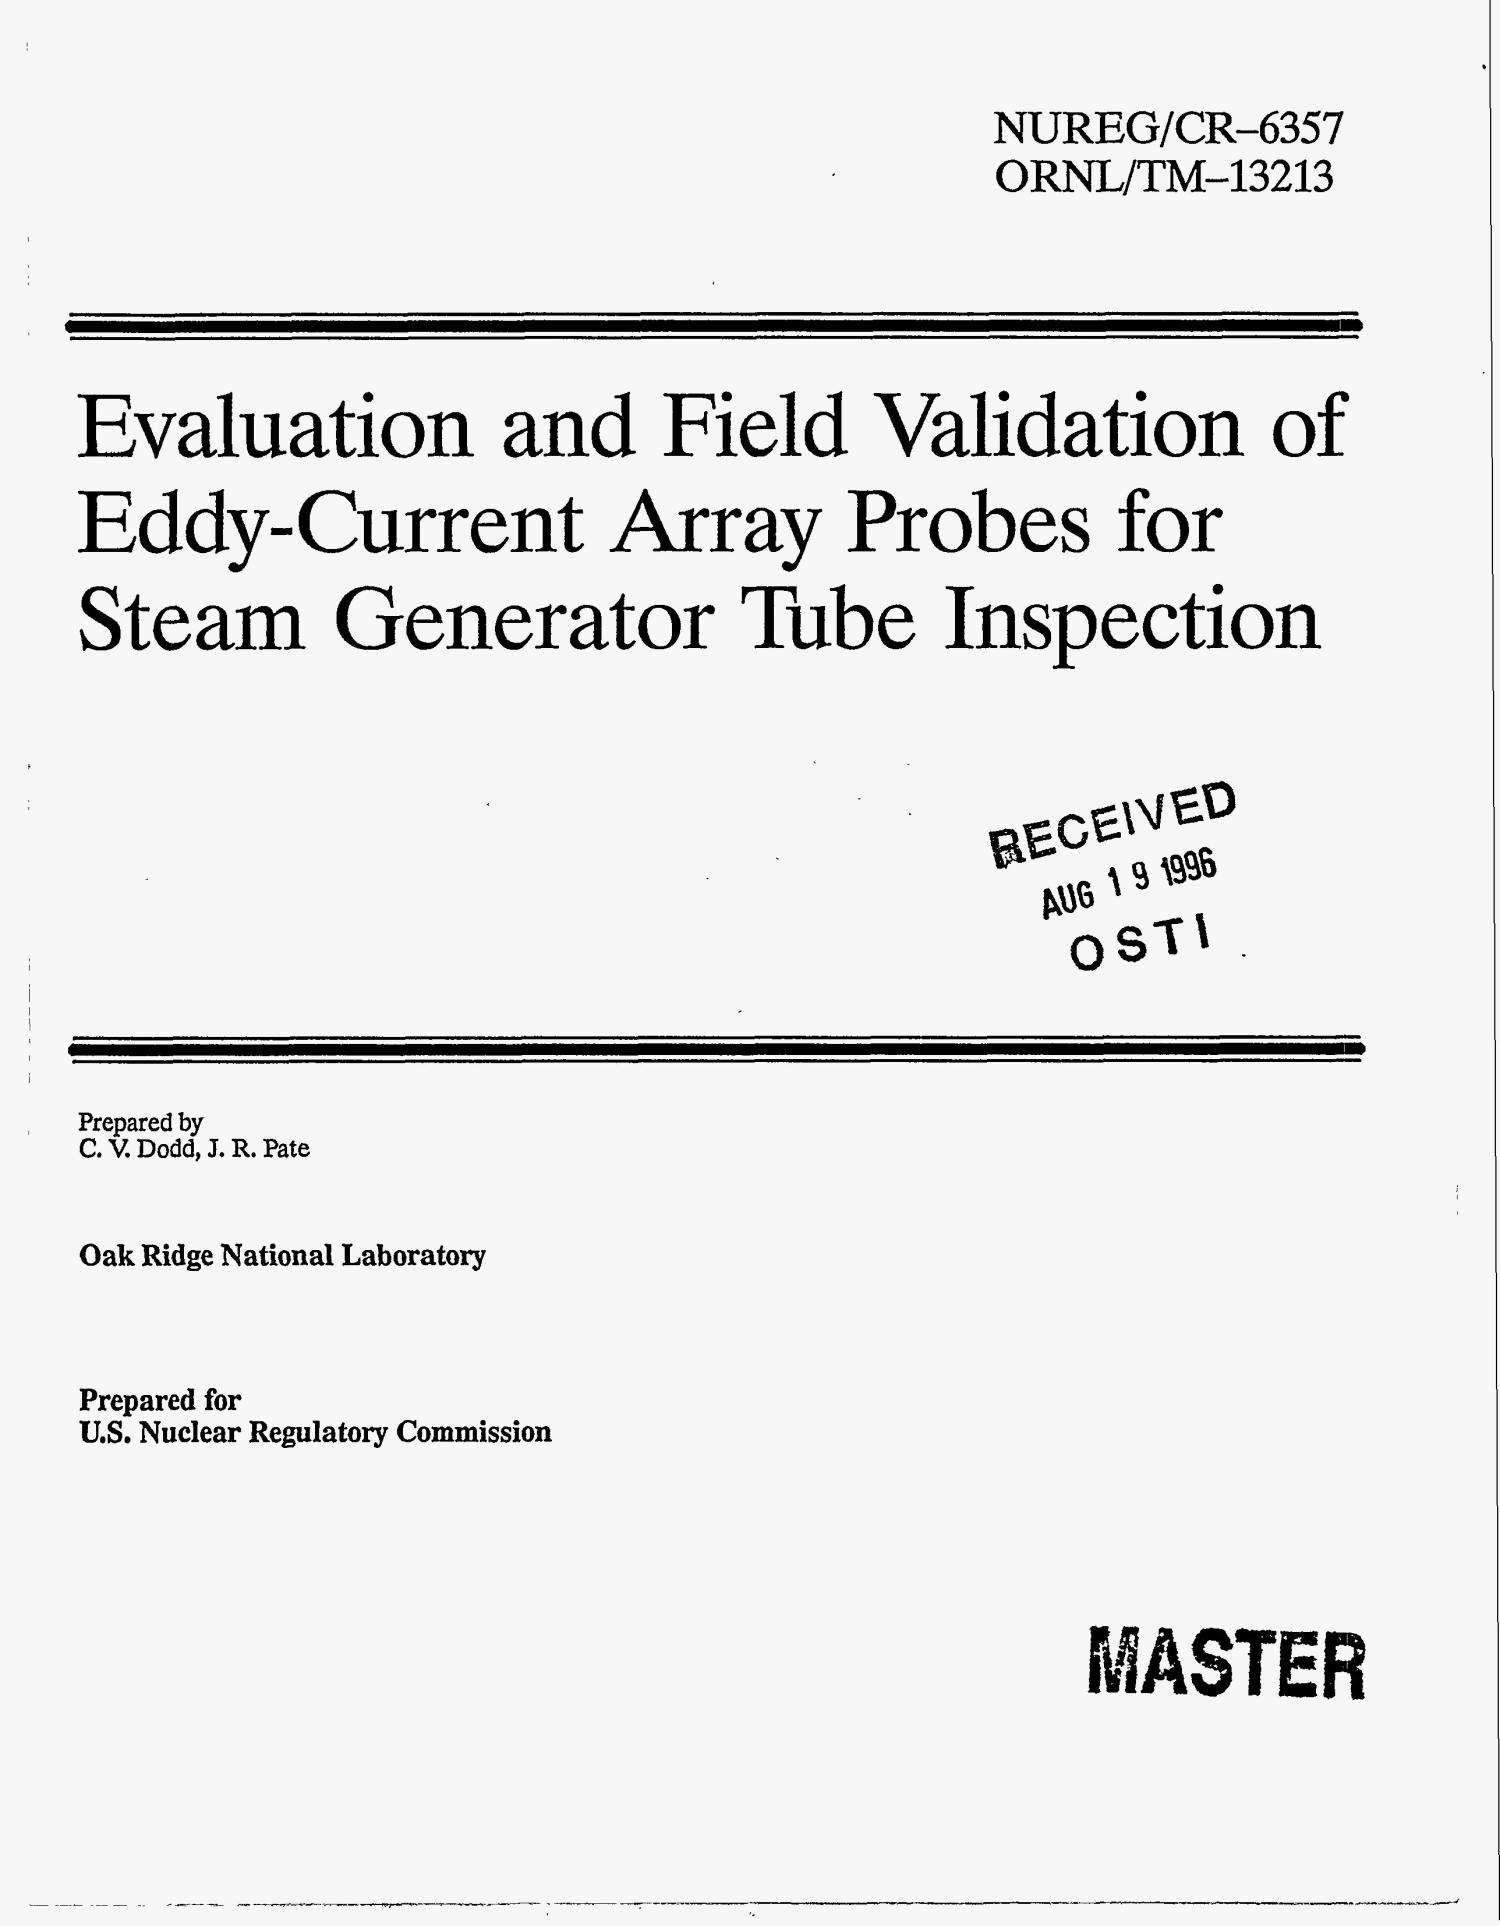 Evaluation and field validation of Eddy Current array probes for